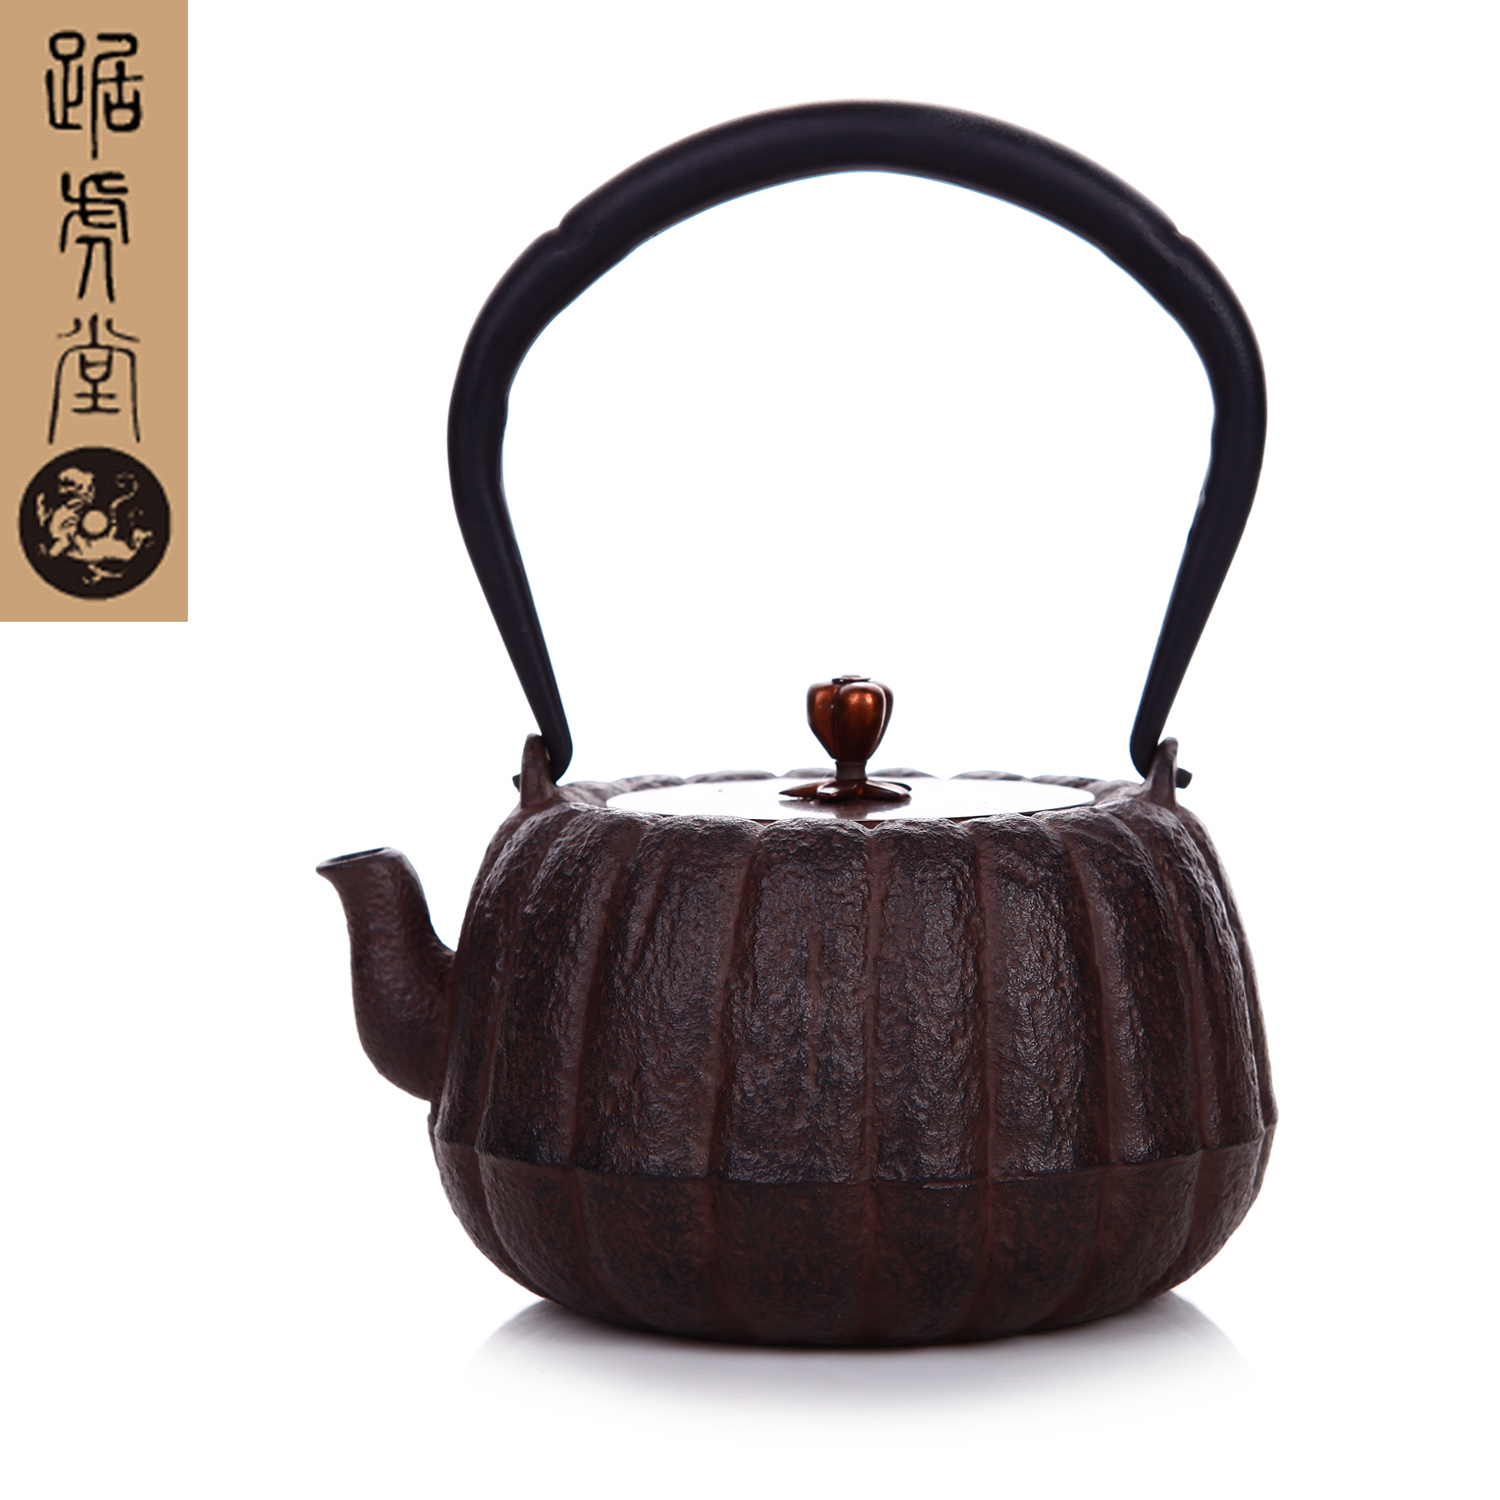 Genuine tiger hall squat red pumpkin pot kyoto old iron kettle in southern japan imported craft new free shipping